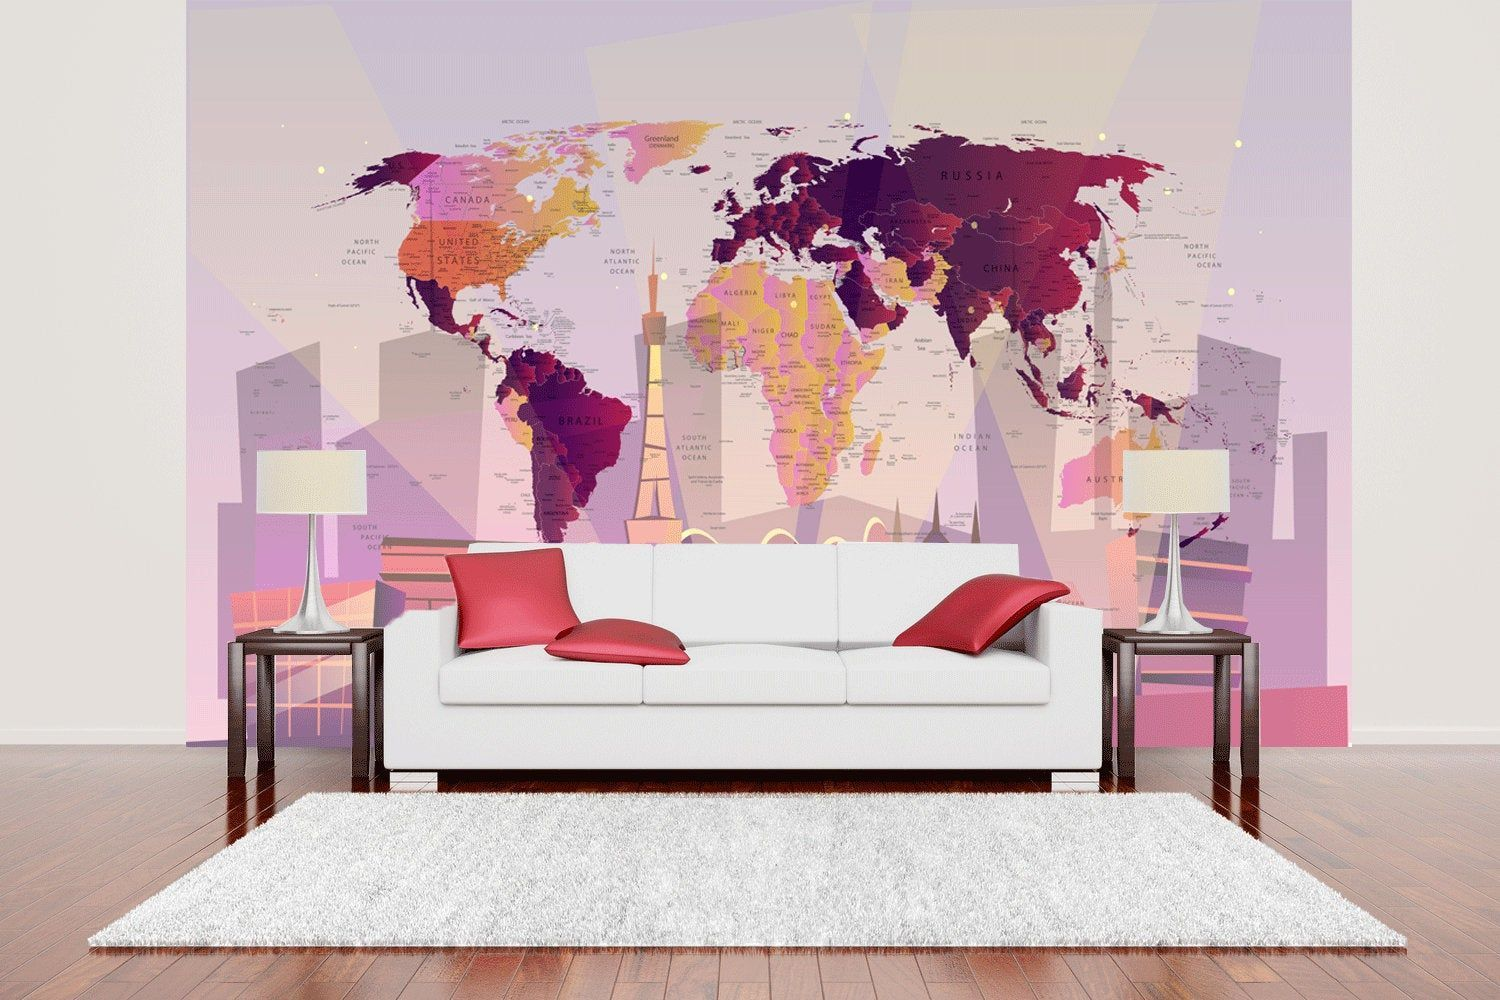 World map Wall mural for living room, World map purple decal for walls, Higth detailed world map wall mural of world SKU 20314 #worldmapmural World map Wall mural for living room, World map purple decal for walls, Higth detailed world map wall mural of world SKU 20314 #worldmapmural